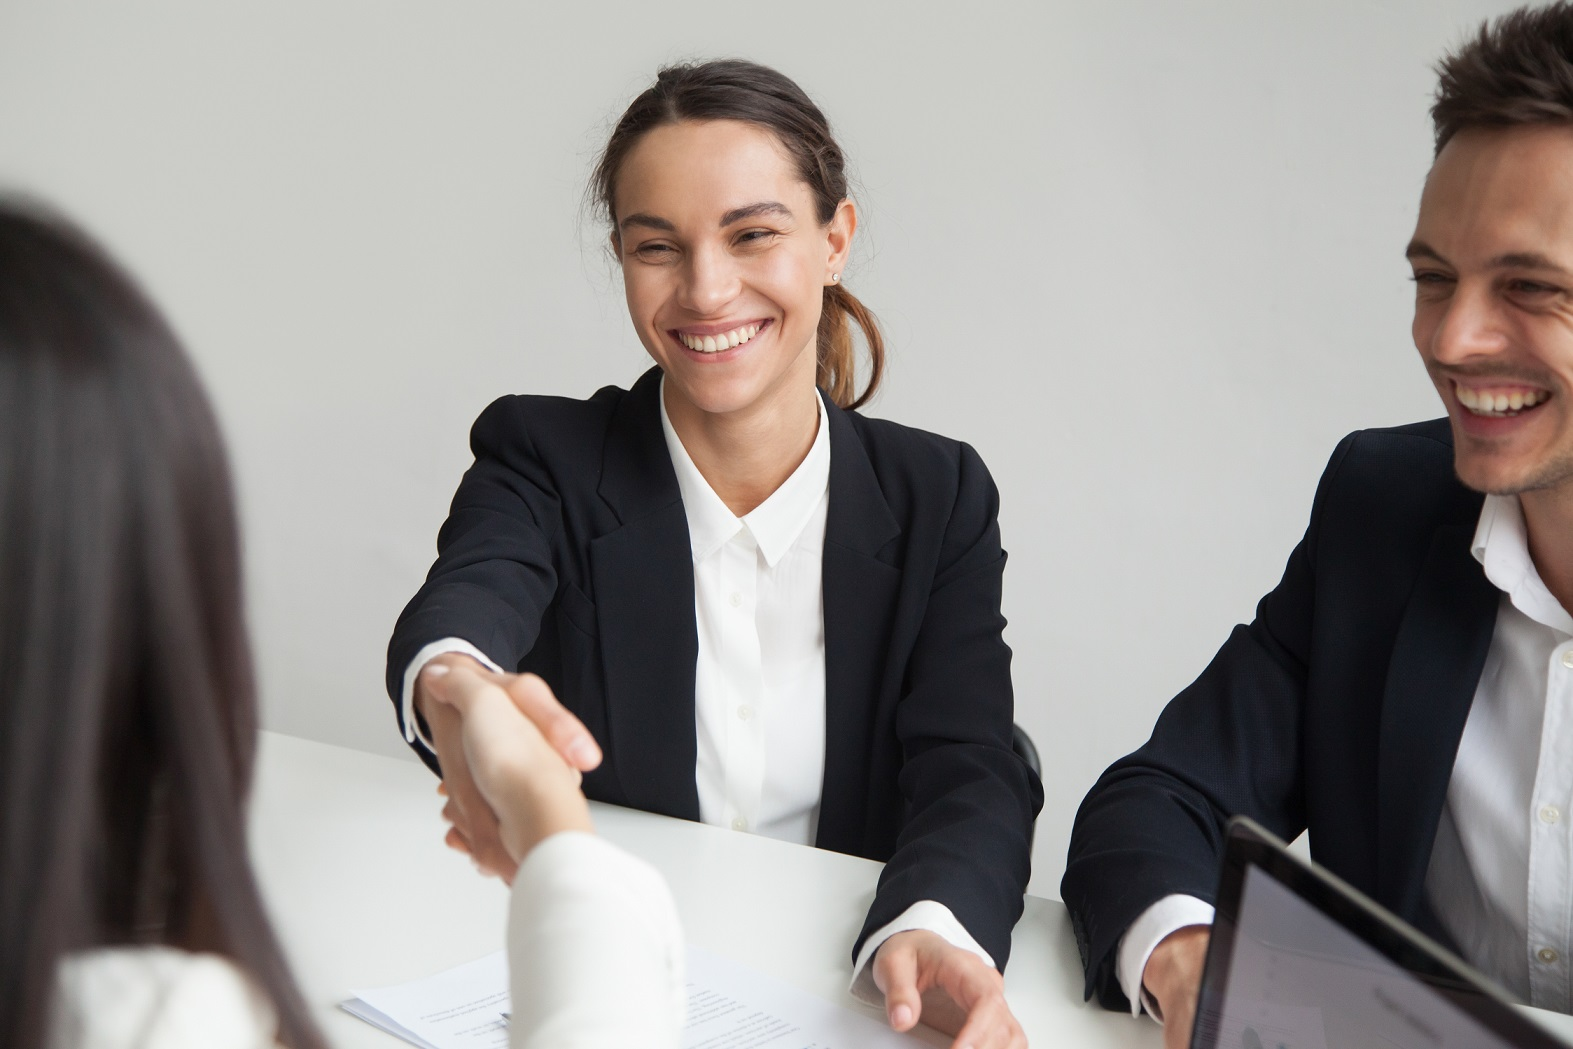 Smiling female hand-shaking her employer